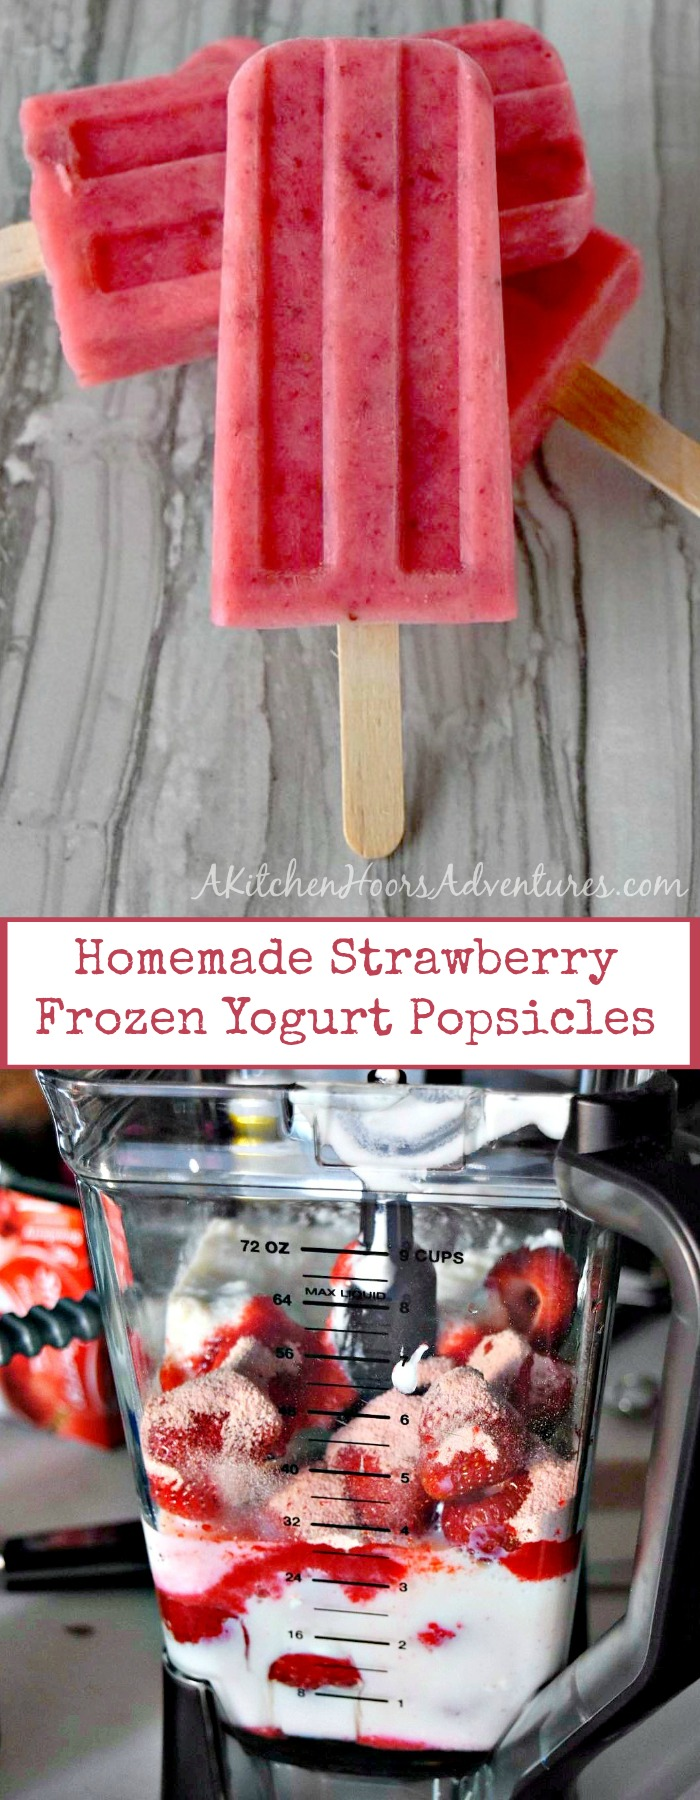 Fresh, in season strawberries, creamy yogurt, and sweet honey combine to make these summery Homemade Strawberry Frozen Yogurt Popsicles. #FreakyFridayRecipes